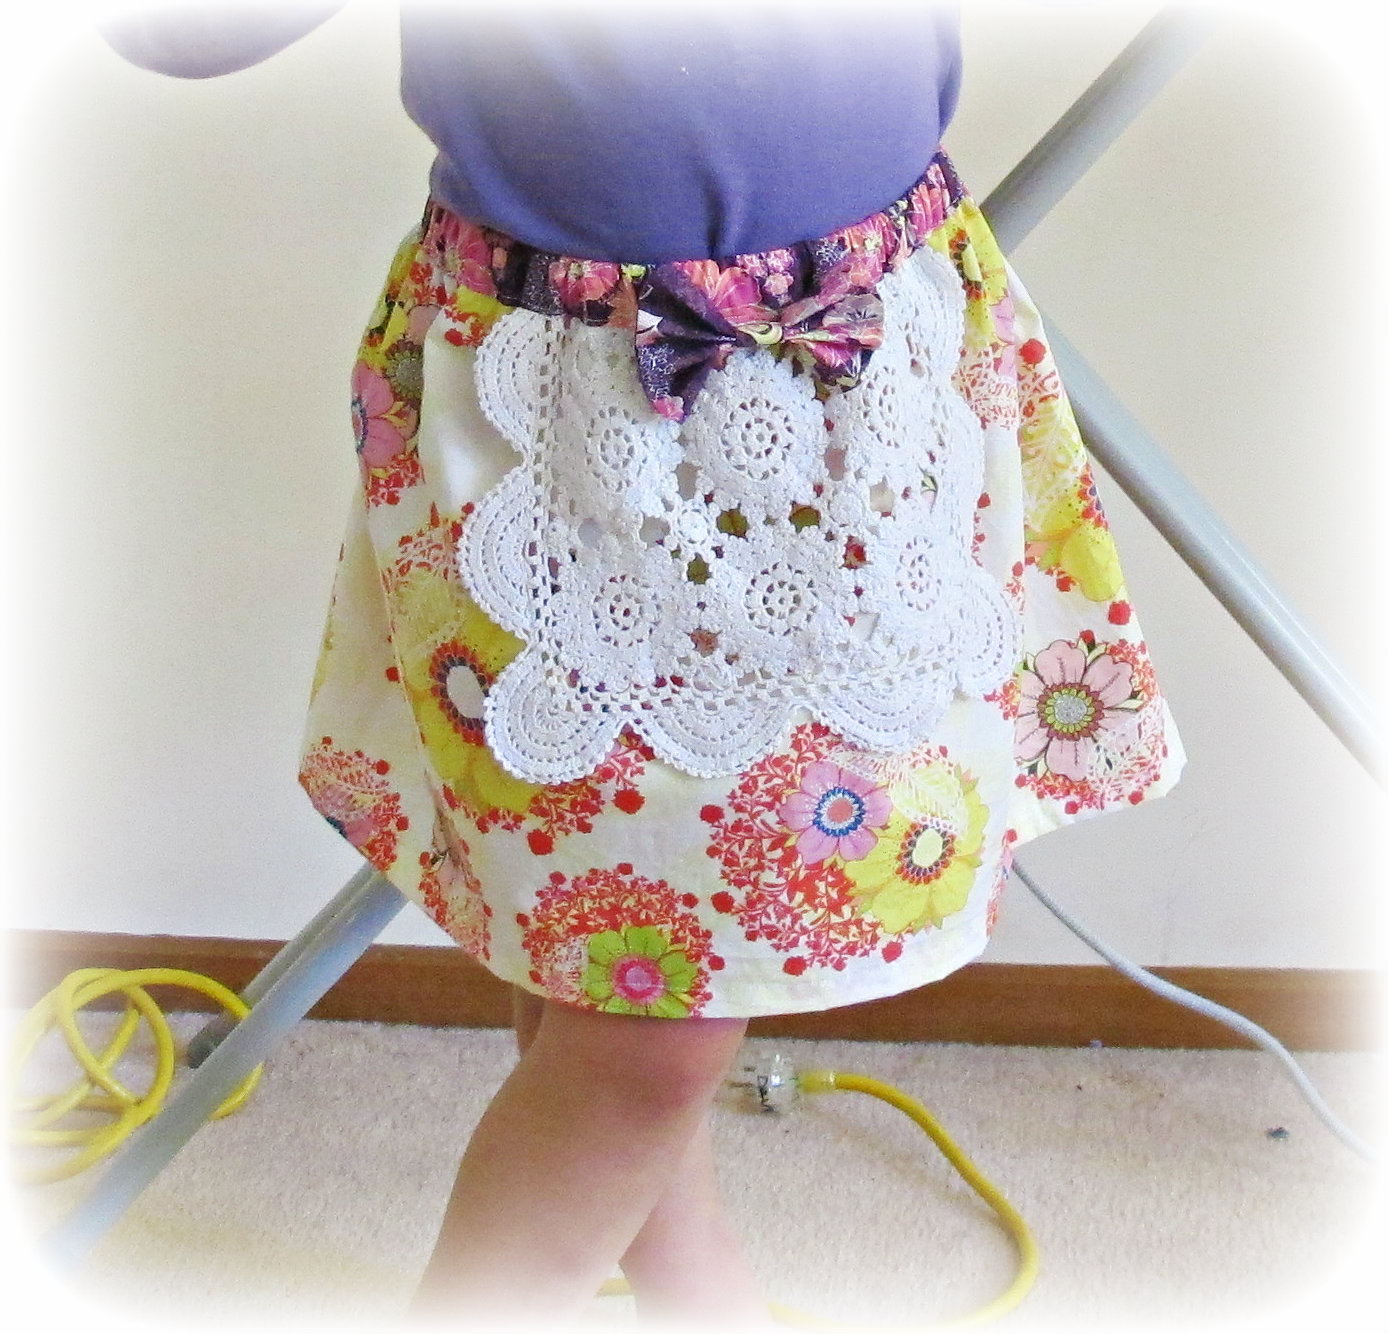 image doily apron skirt yellow white purple bow poetica serenad moon light art gallery fabrics rhapsodia mystic aura fields patricia bravo